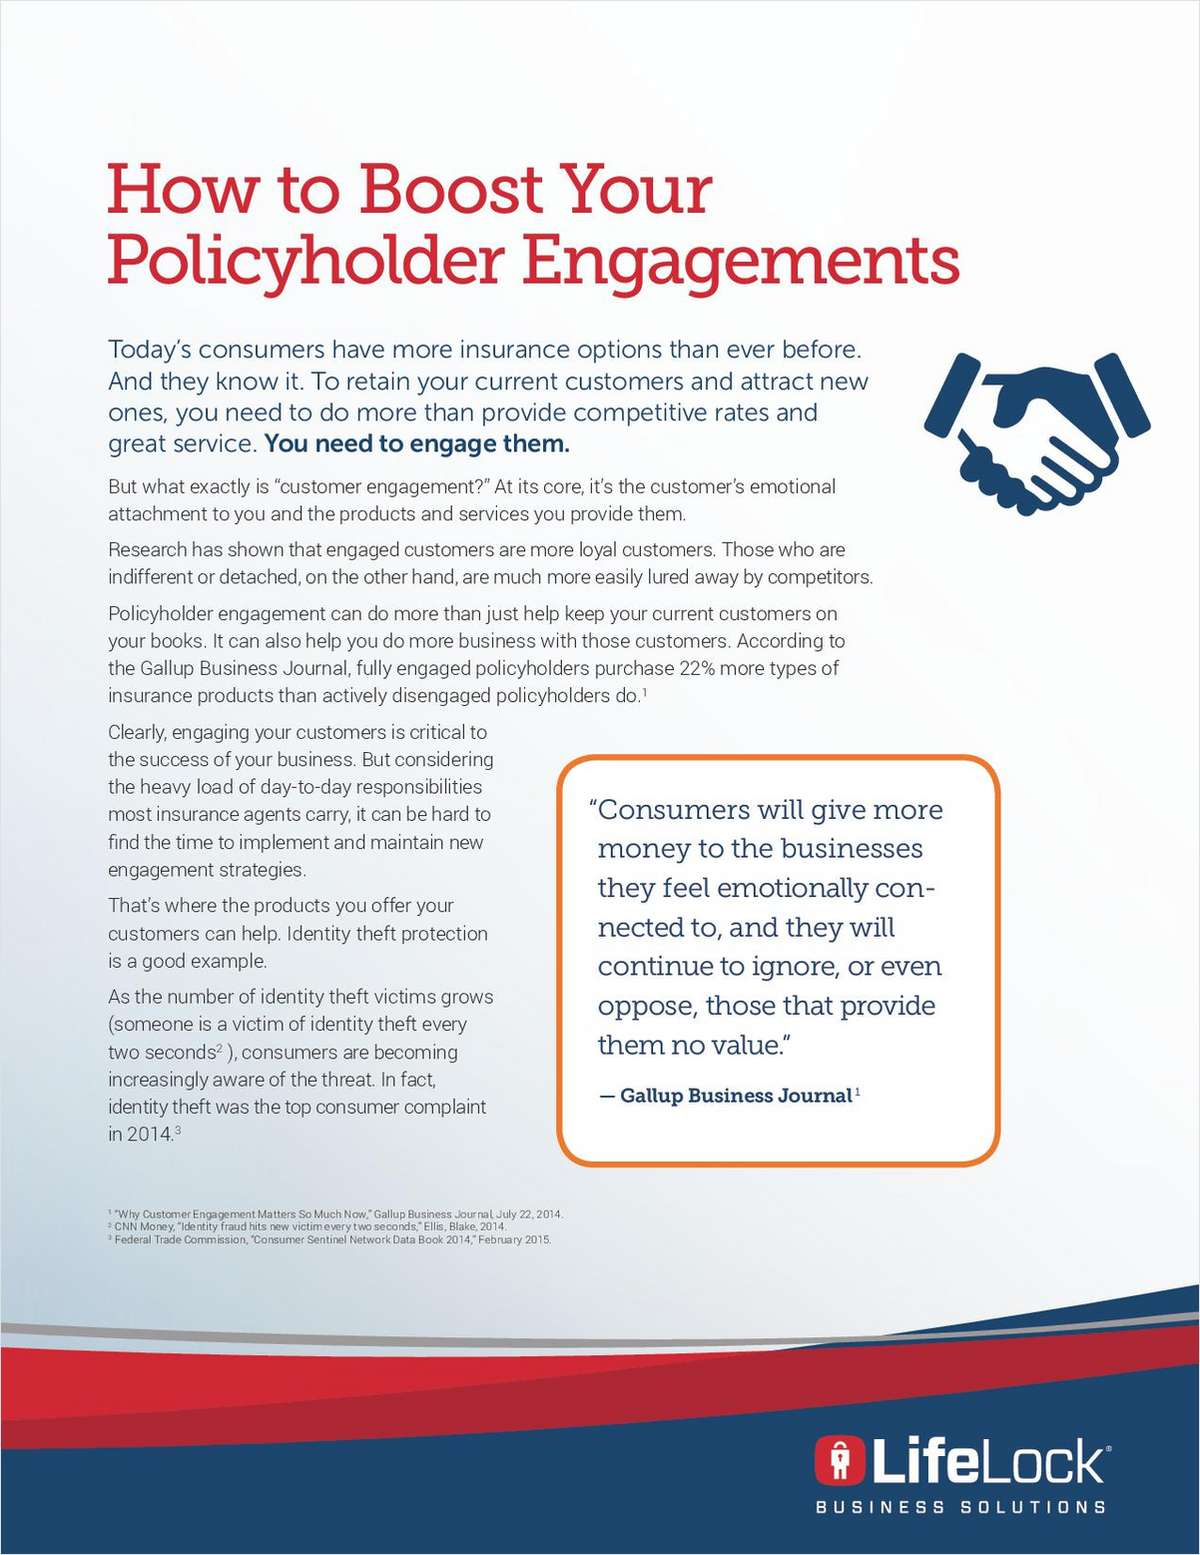 Find Out How to Boost Policyholder Engagements